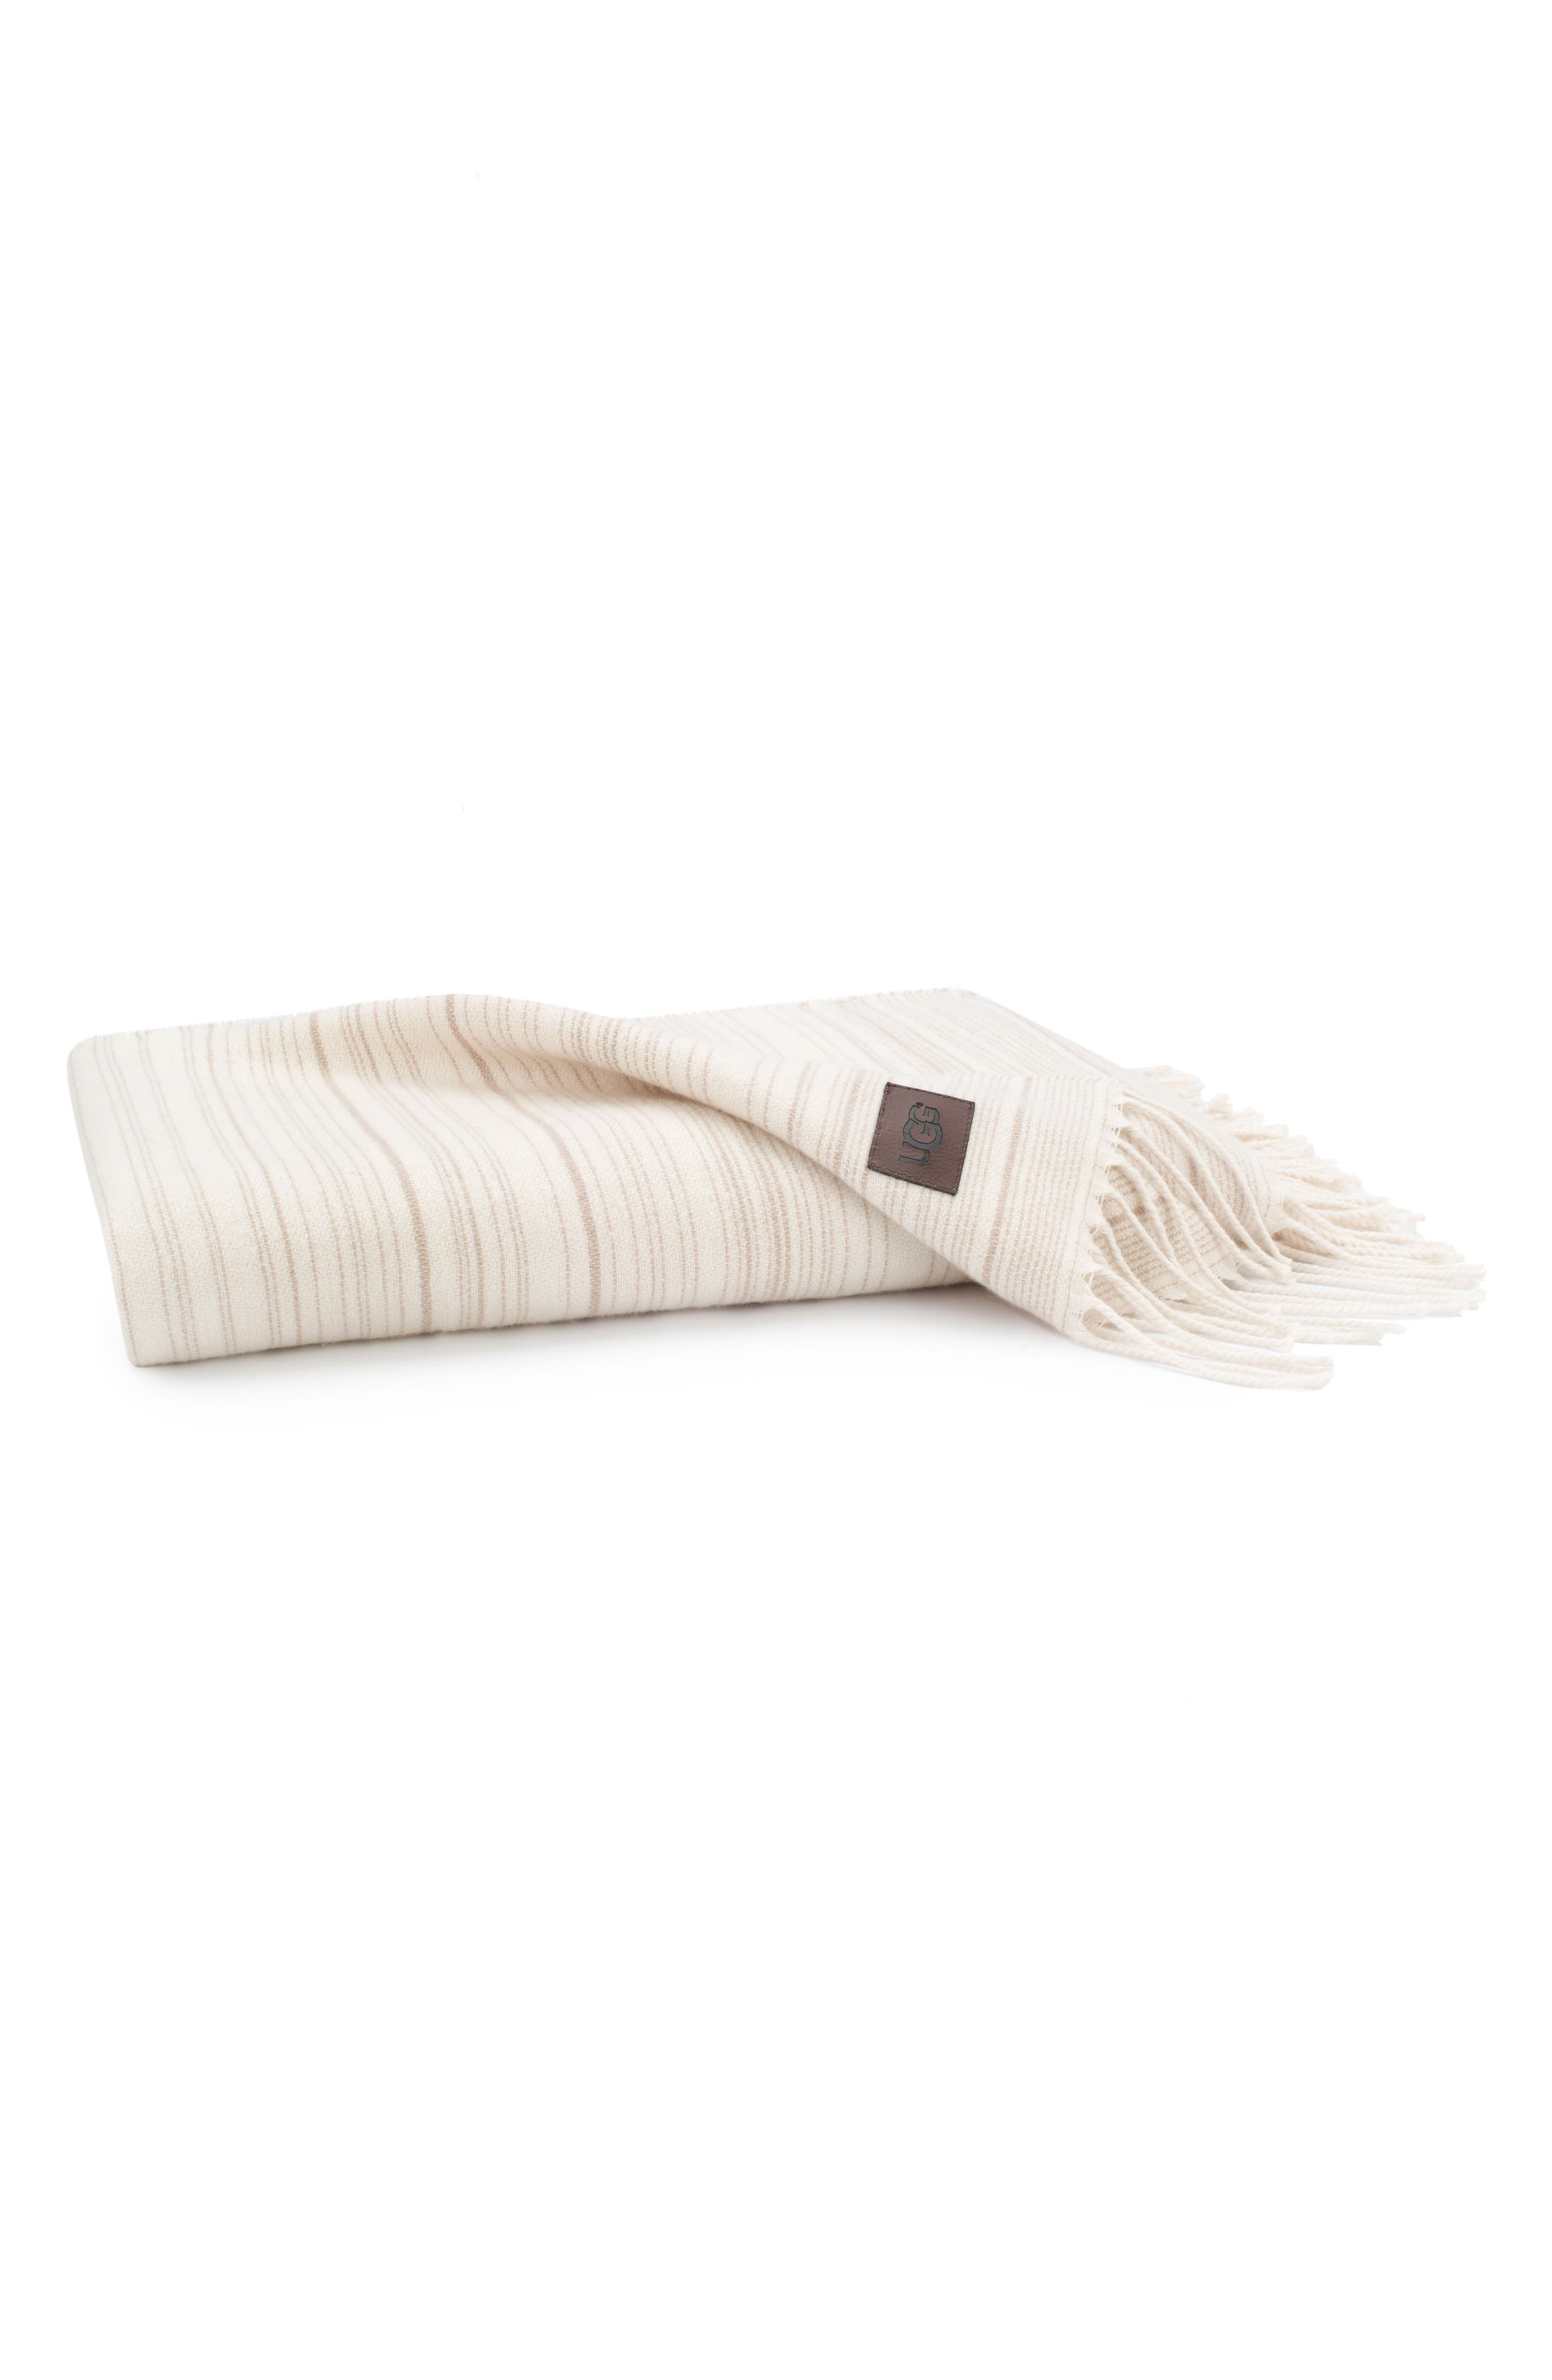 Driftwood Stripe Throw,                         Main,                         color, Snow/ Bone